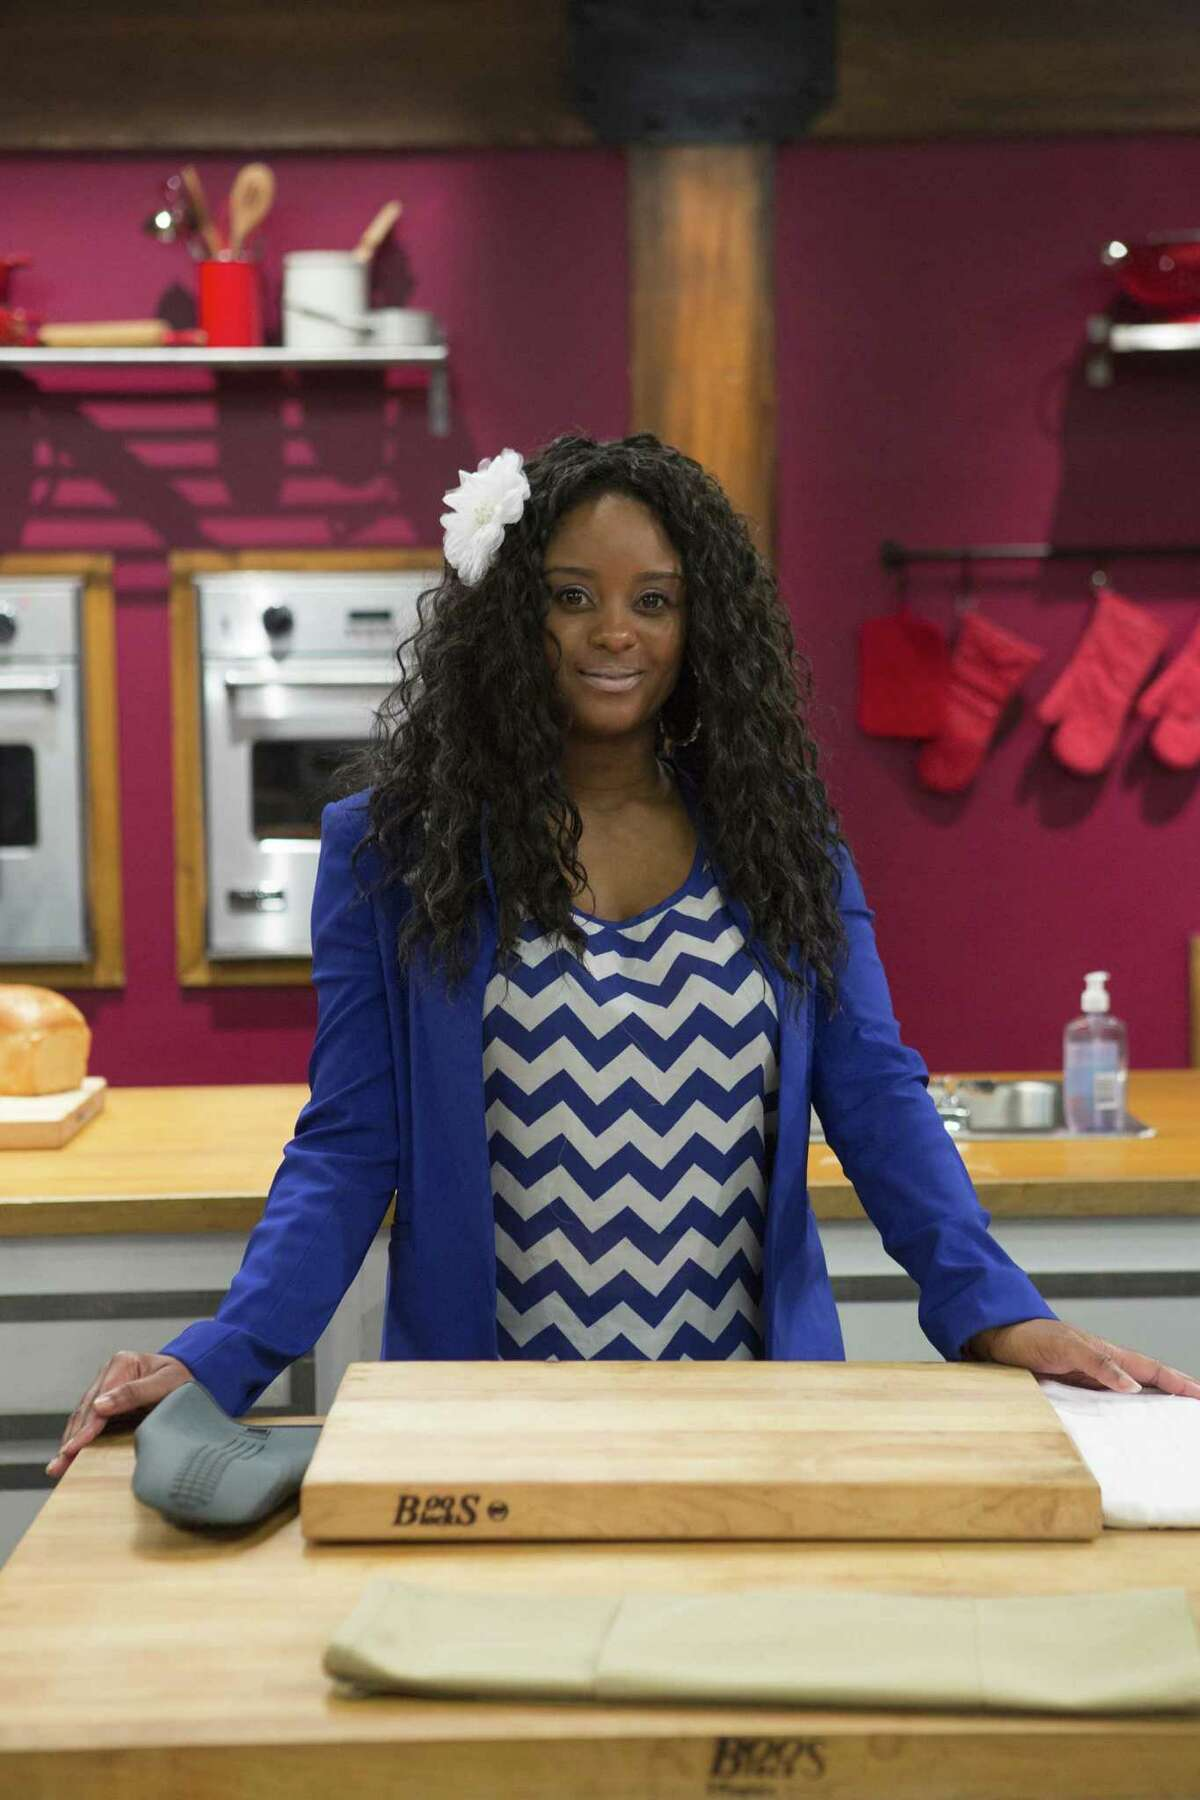 """Kortni Montgomery of Houston will be one of the competitors in the sixth season of the culinary boot camp """"Worst Cooks In America"""" on the Food Network. The new season begins Jan. 4, 2015."""